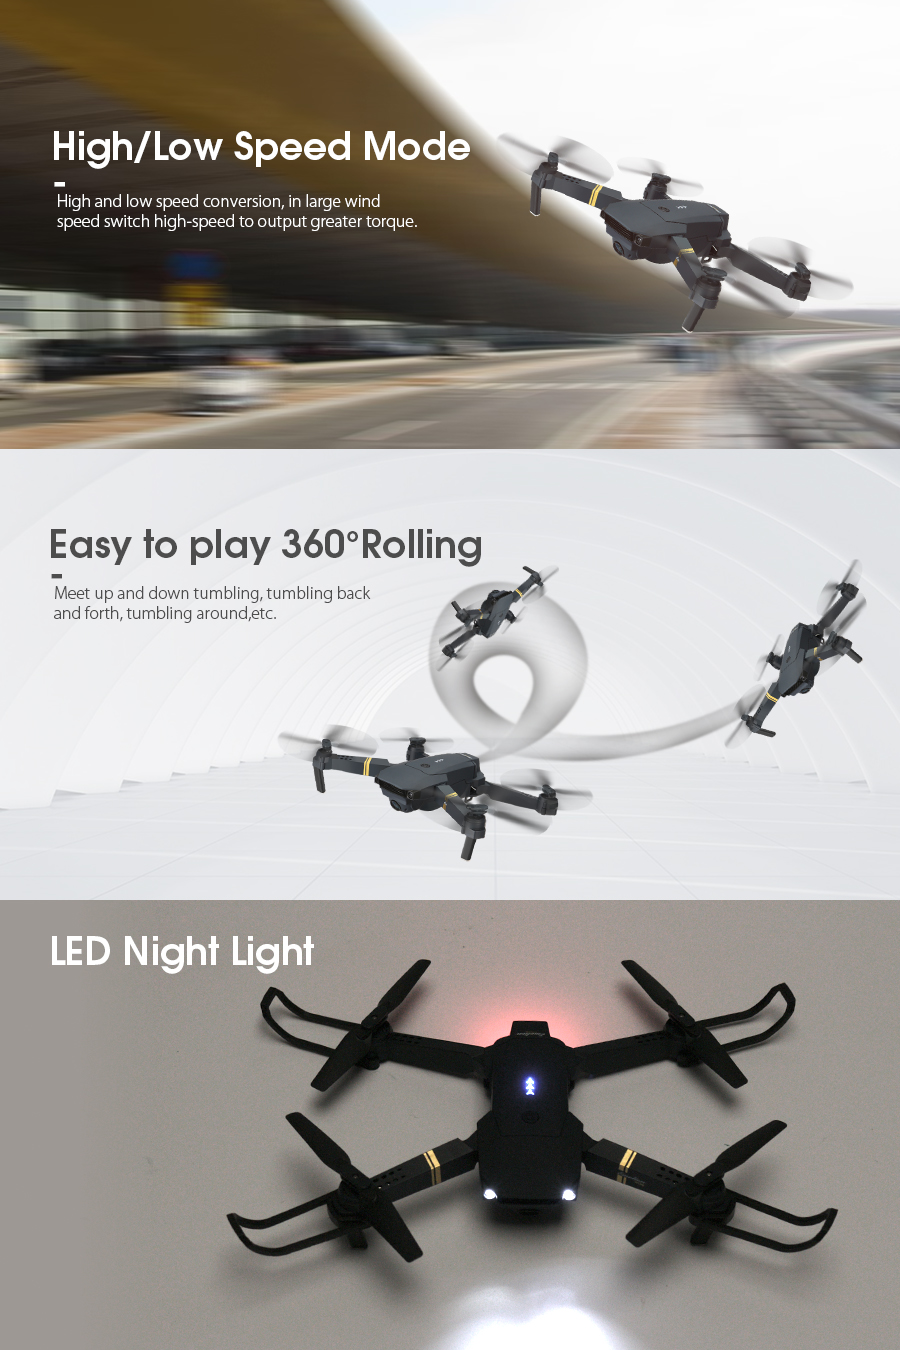 Super fast, easy to play 360 degrees rolling and LED Night Light on Eachine E58